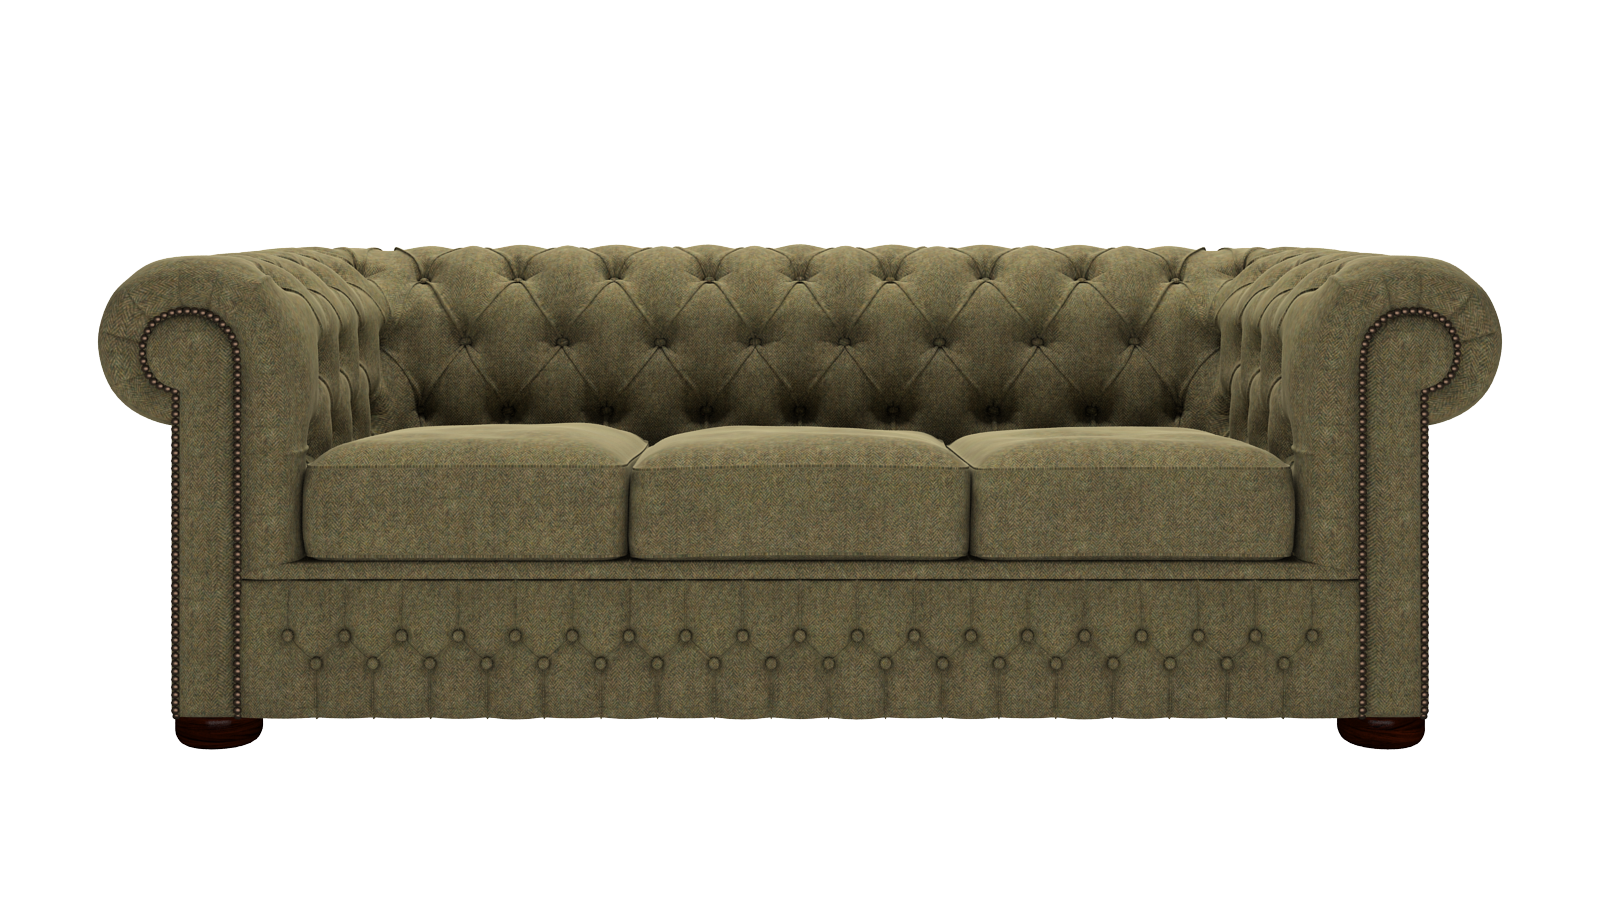 Choosing A Fabric Chesterfield Sofa Is Great Choice If You Are Looking For Softer More Contemporary Piece Your Home However Many People Believe